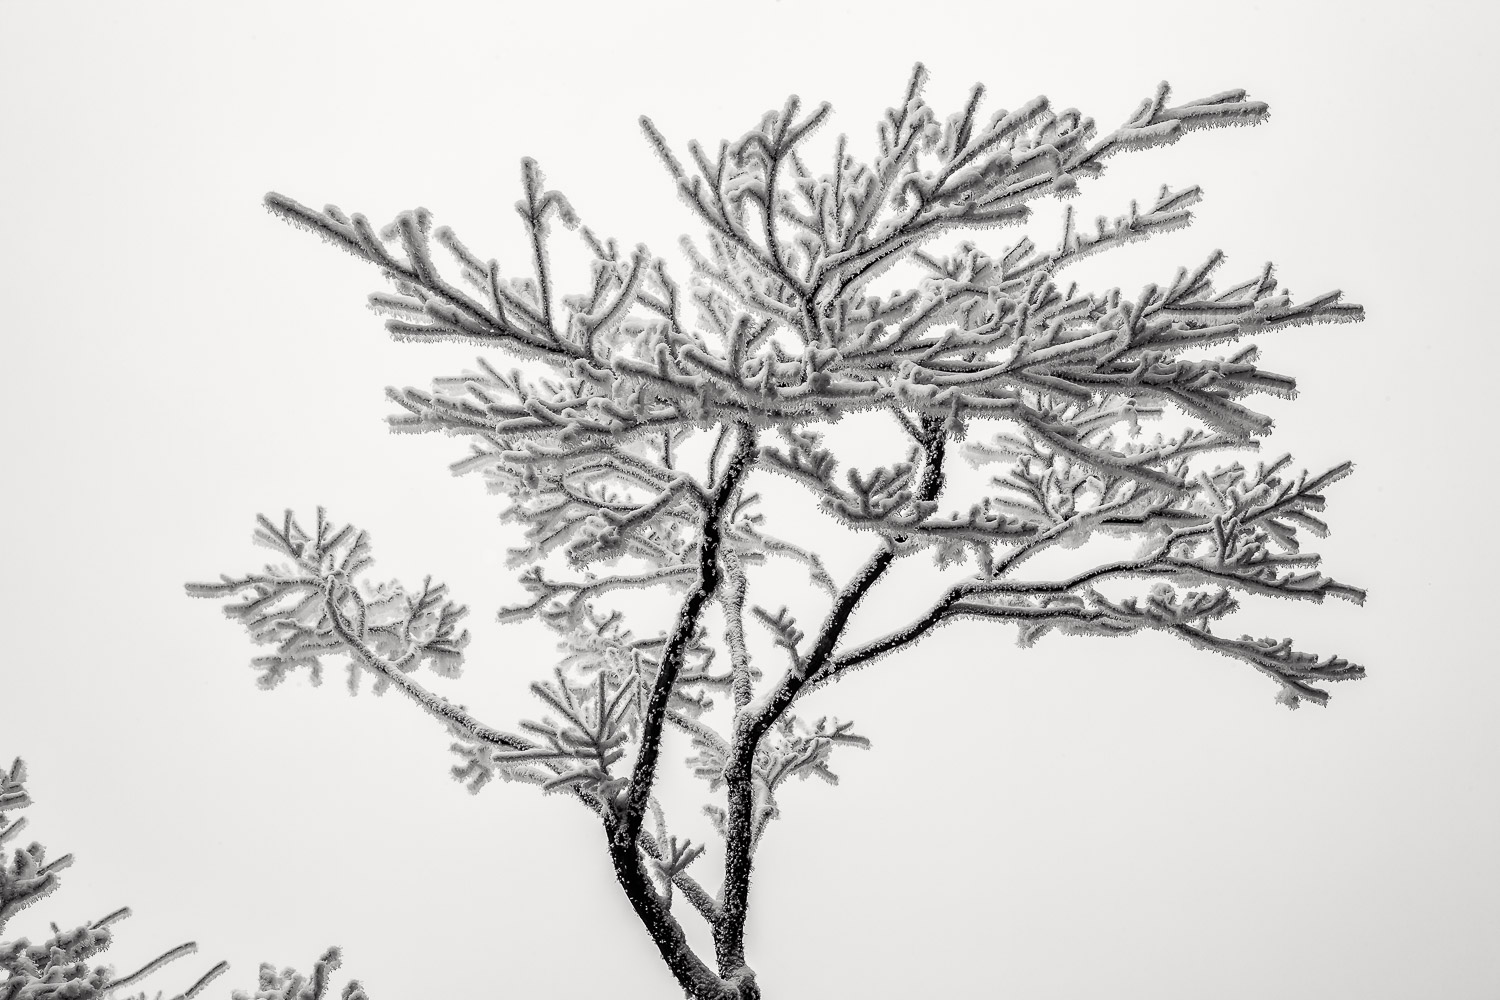 Ice crystals on tree show the delicate beauty of nature on Huangshan (Yellow Mountain), China